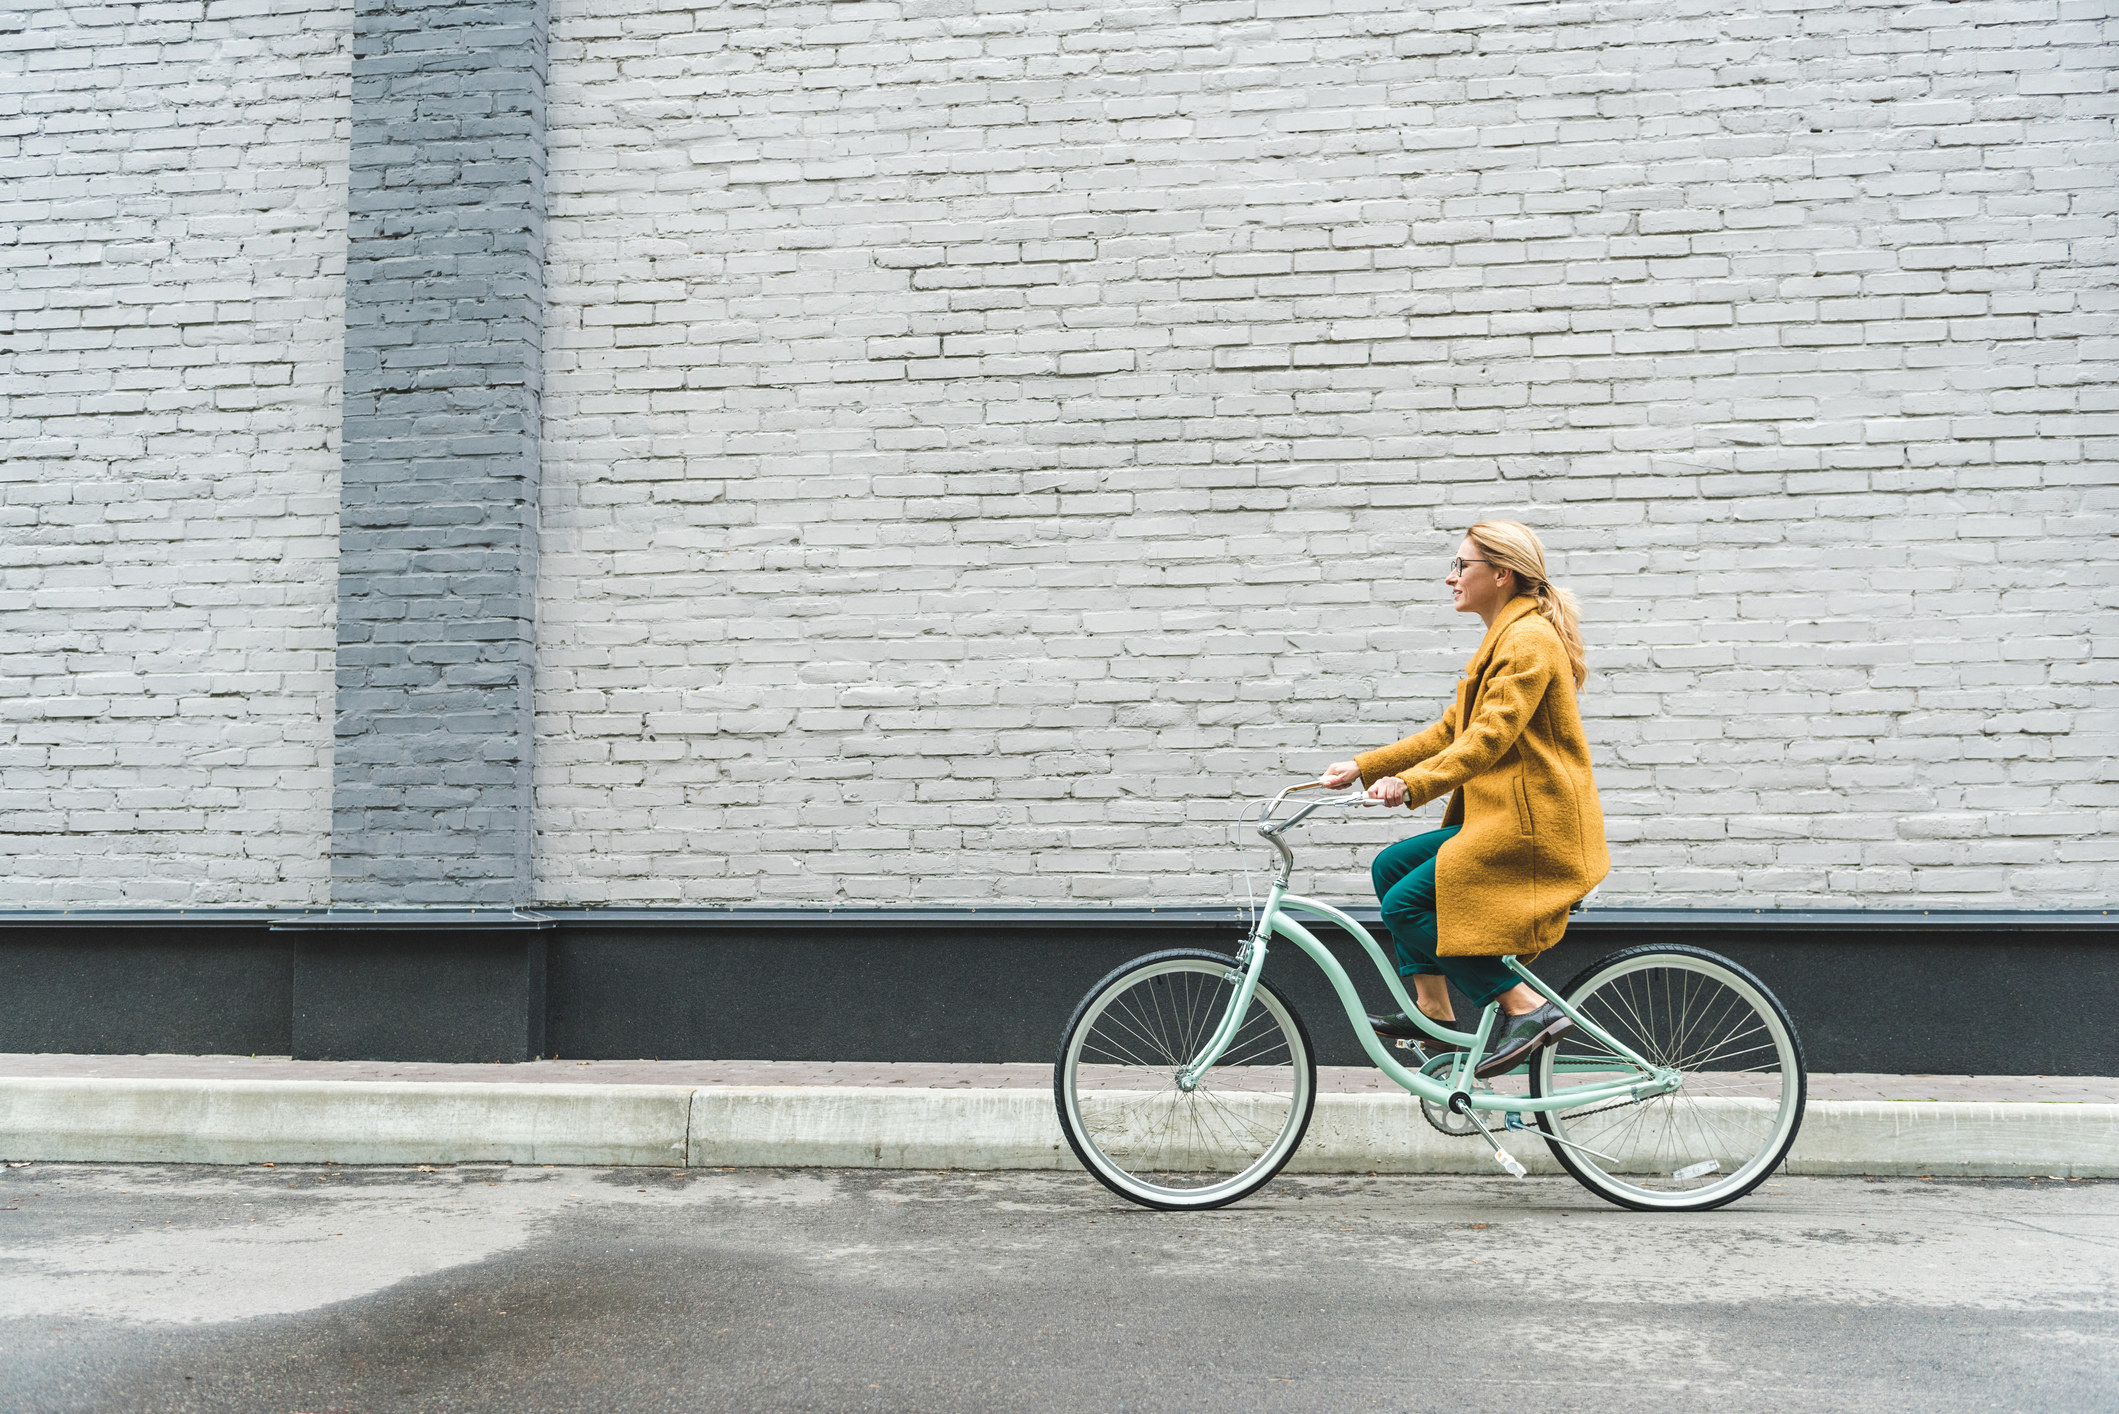 photo of a woman riding a blue bike while wearing green pants and a yellow long jacket, she has blonde straight hair and is wearing glasses